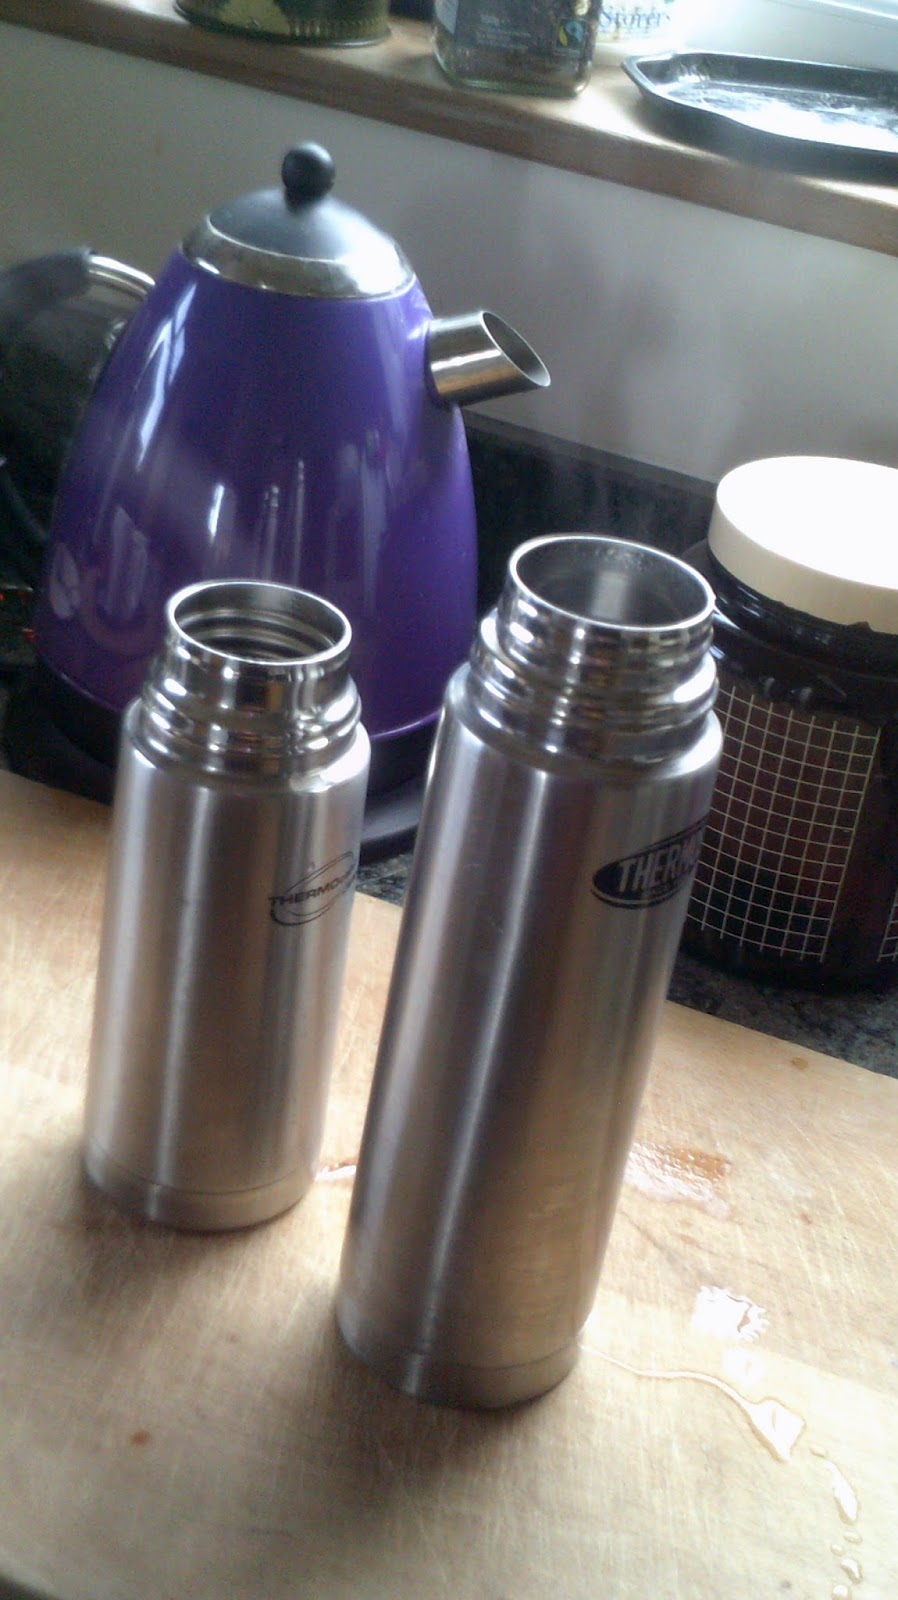 wigton physics: Warming my vacuum flask